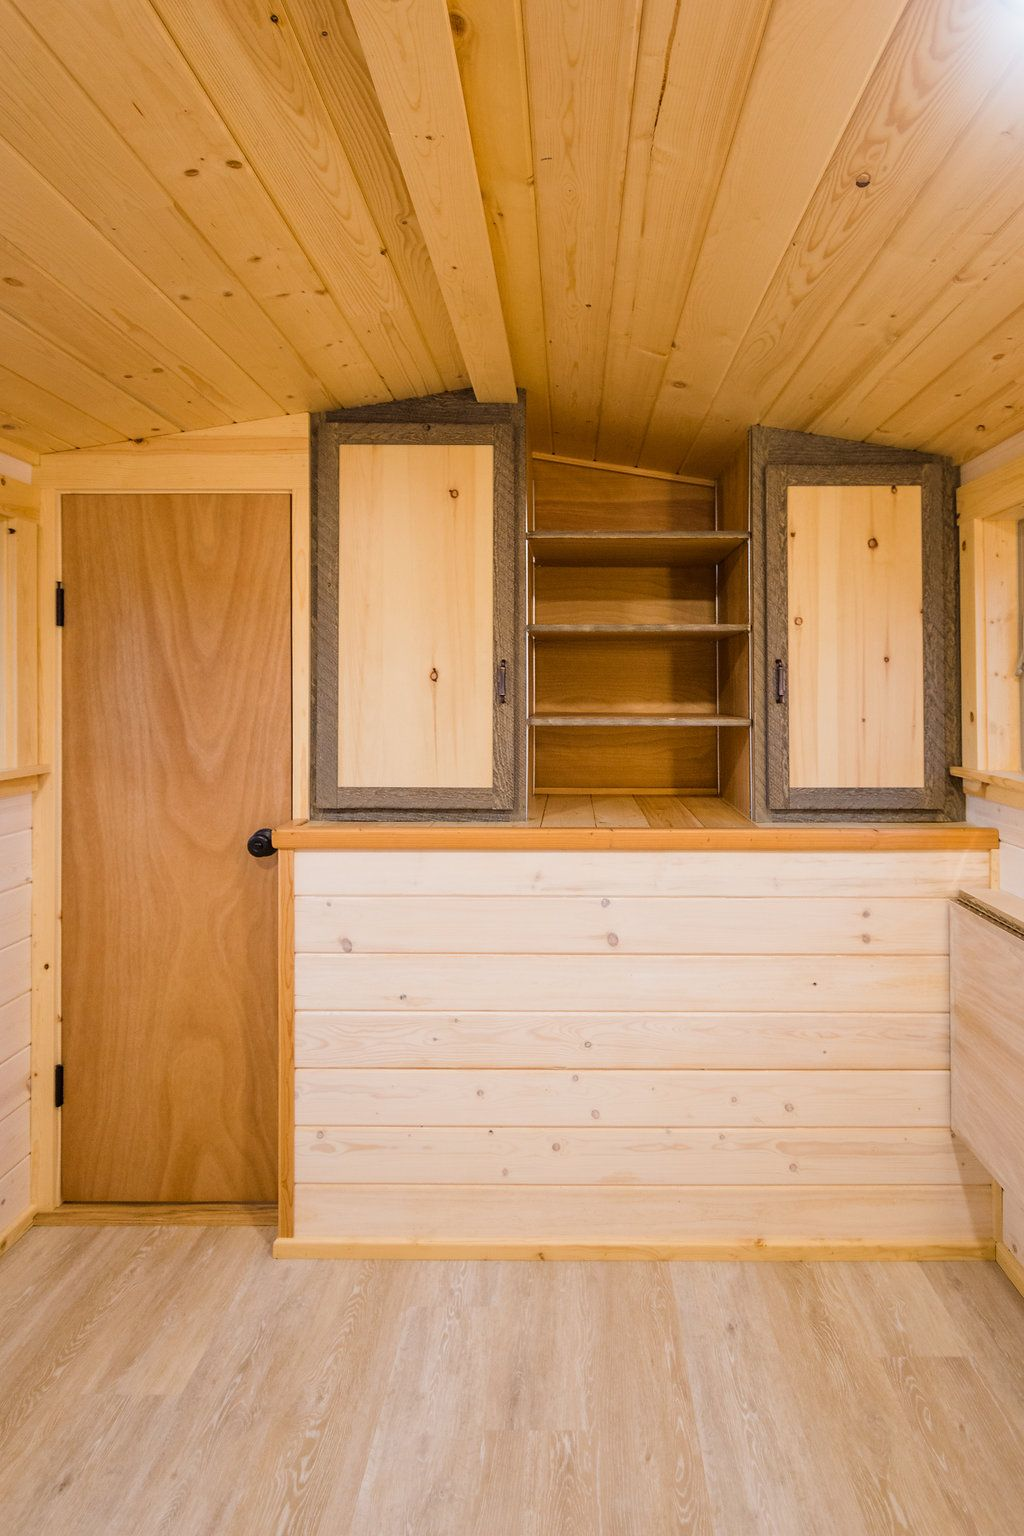 Heather S Photo Page Mitchcraft Tiny Homes With Images